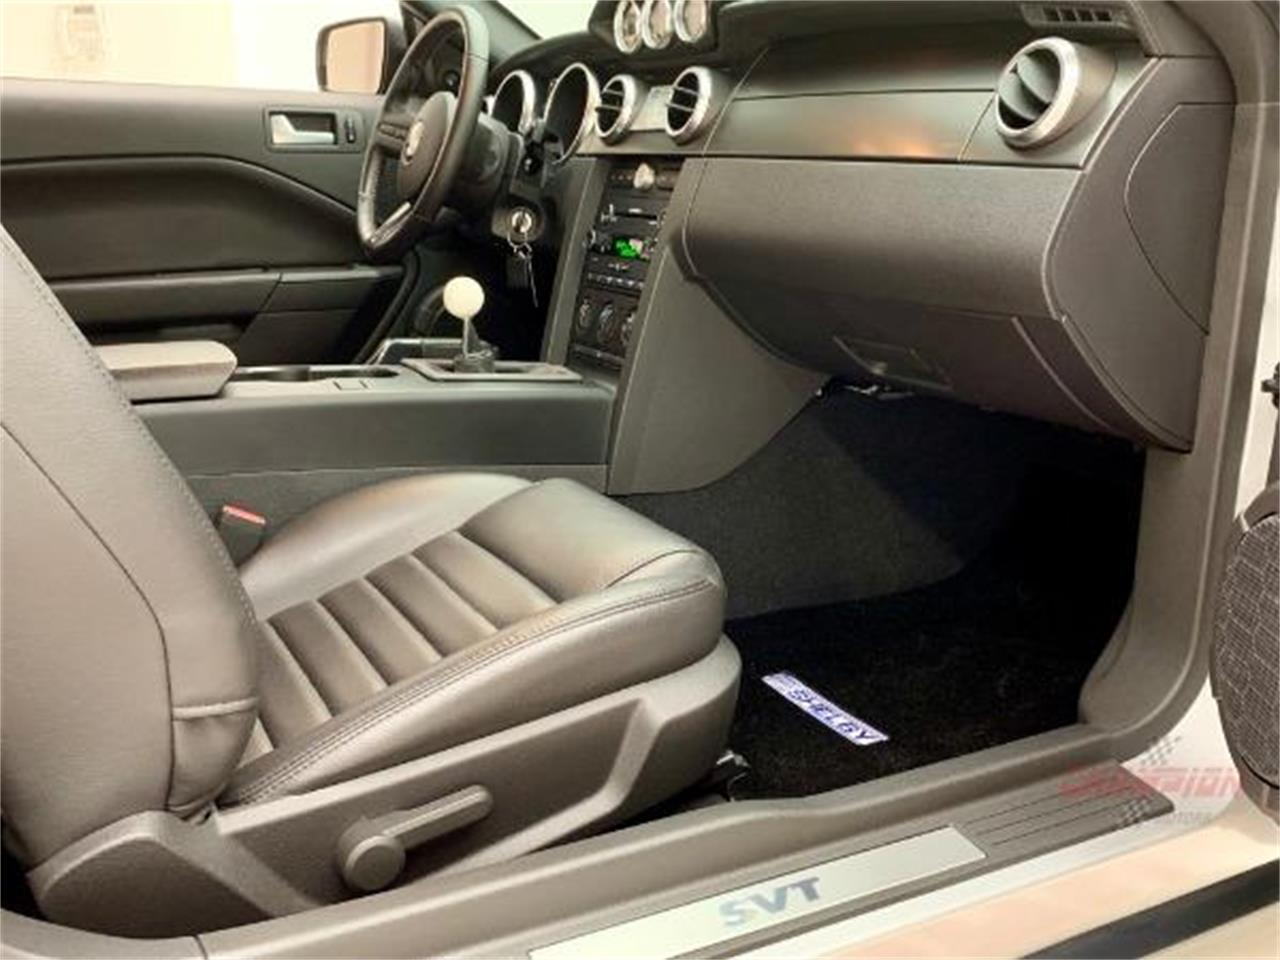 2009 Shelby Mustang for sale in Syosset, NY – photo 28